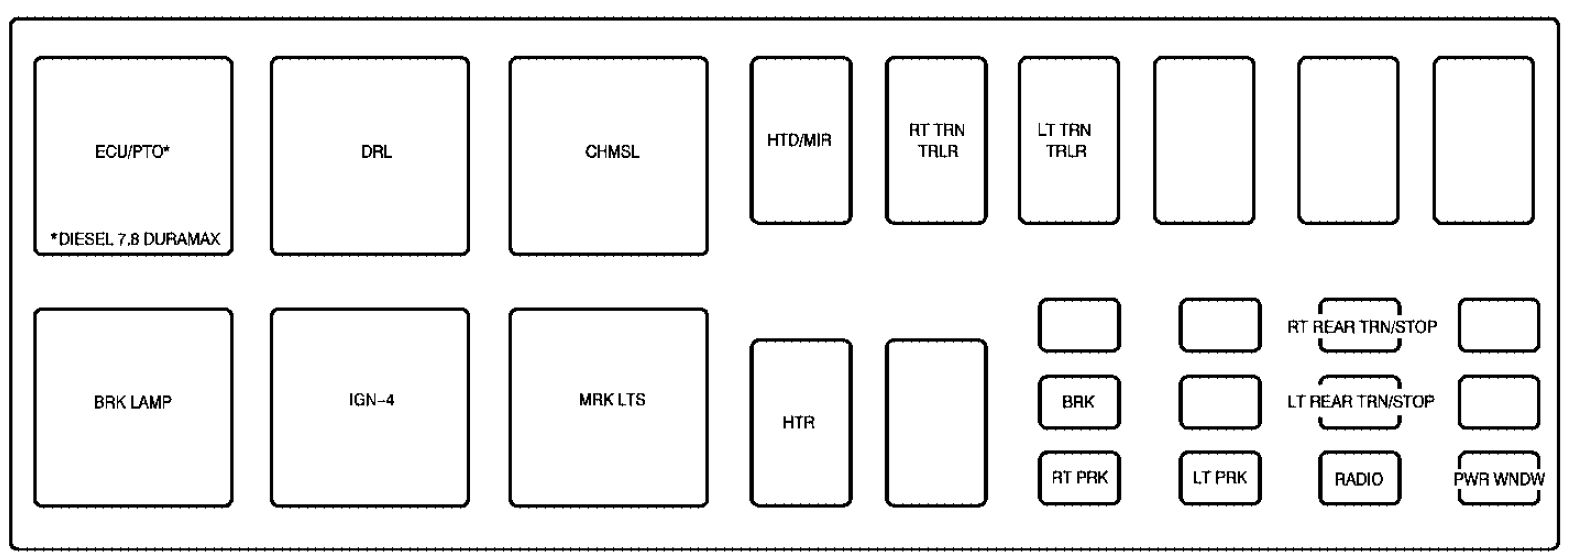 dodge avenger 2008 fuse box diagram